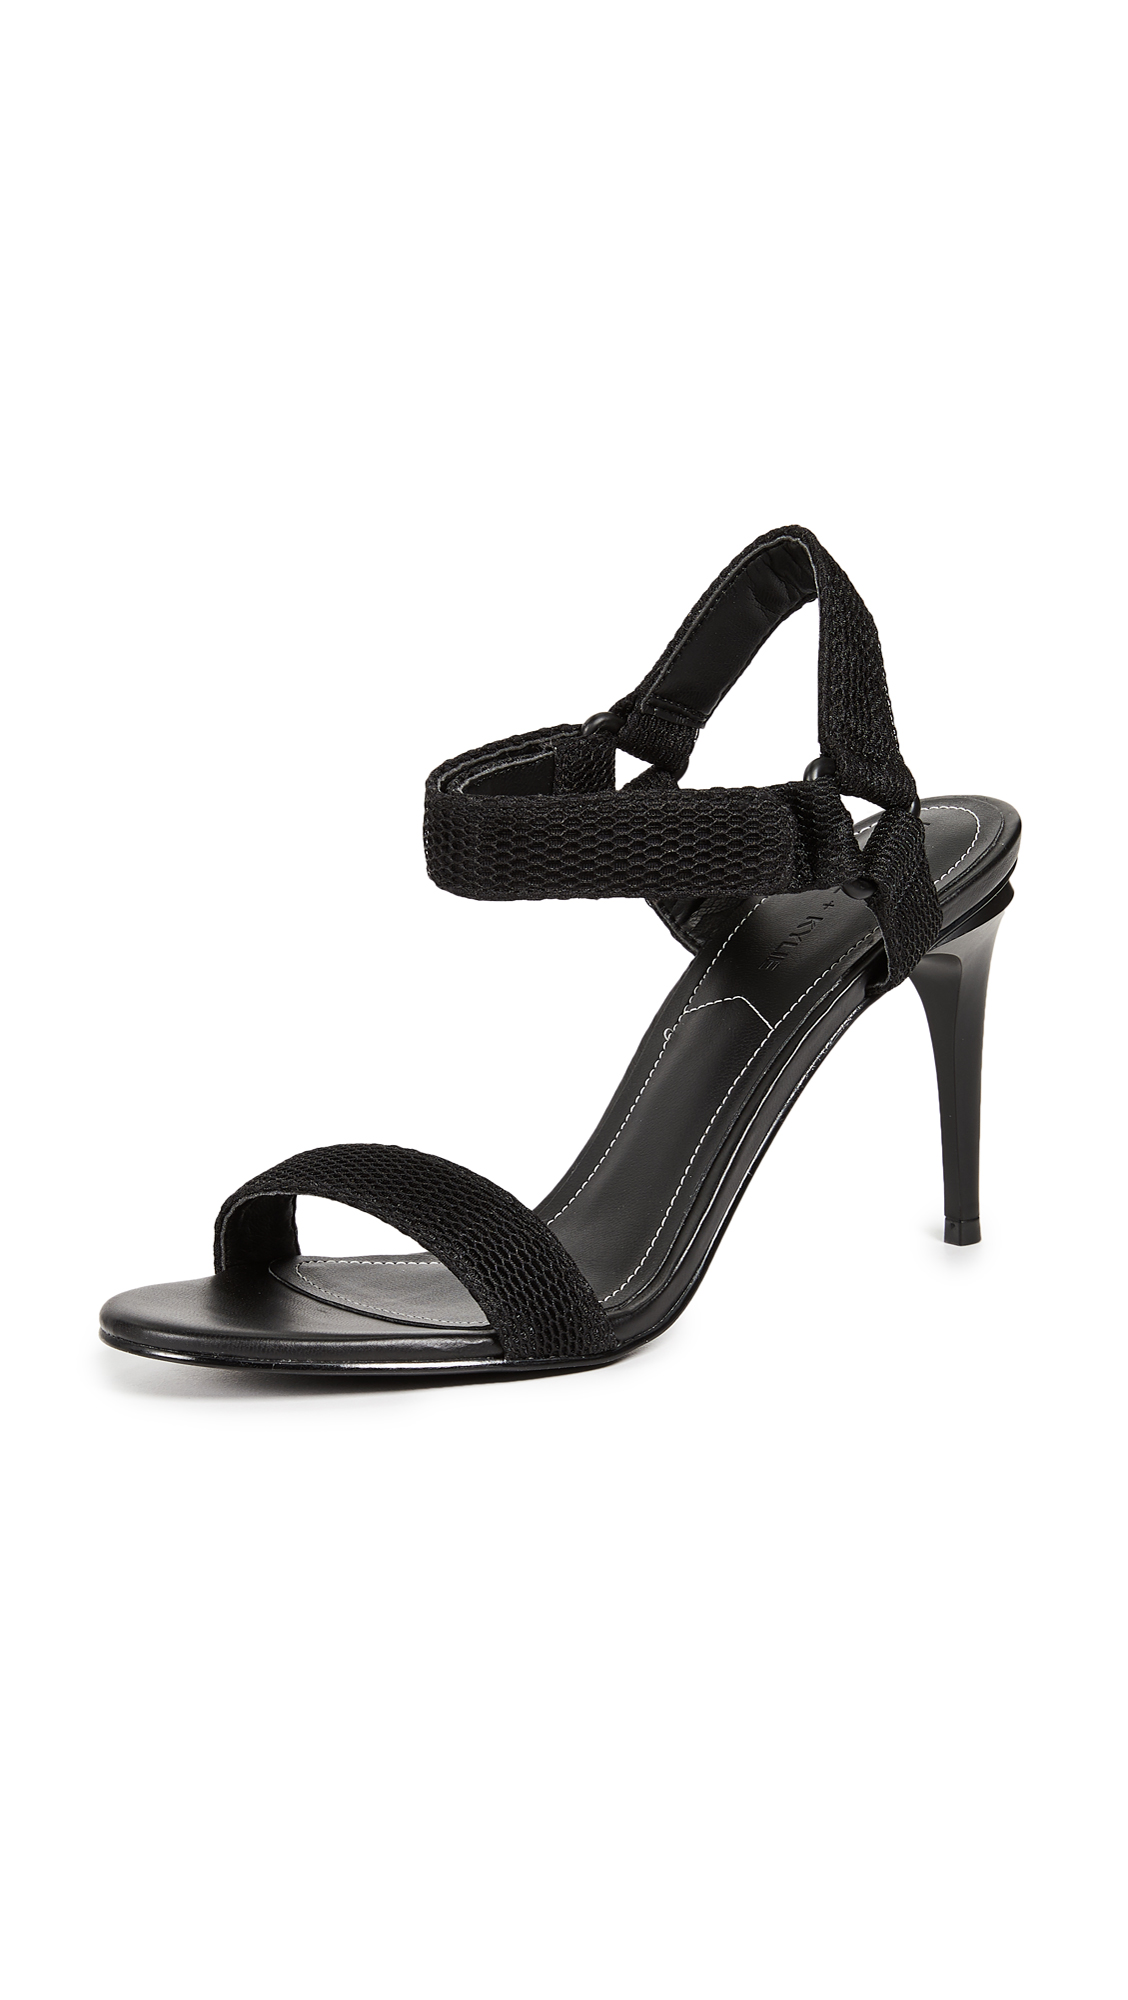 KENDALL + KYLIE Maeve Ankle Strap Sandals - Black